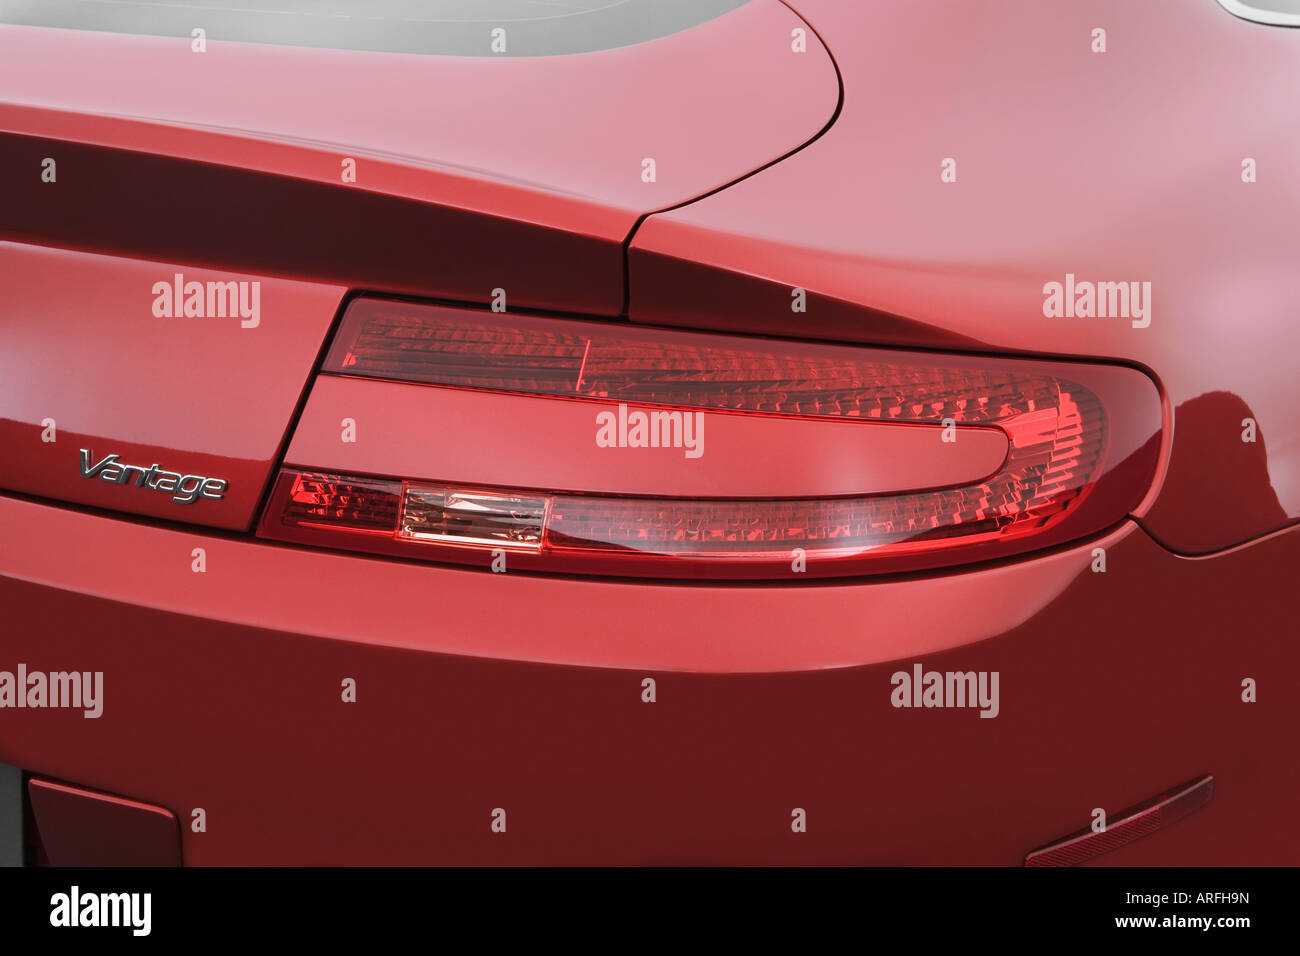 2007 Aston Martin V8 Vantage In Red Tail Light Stock Photo